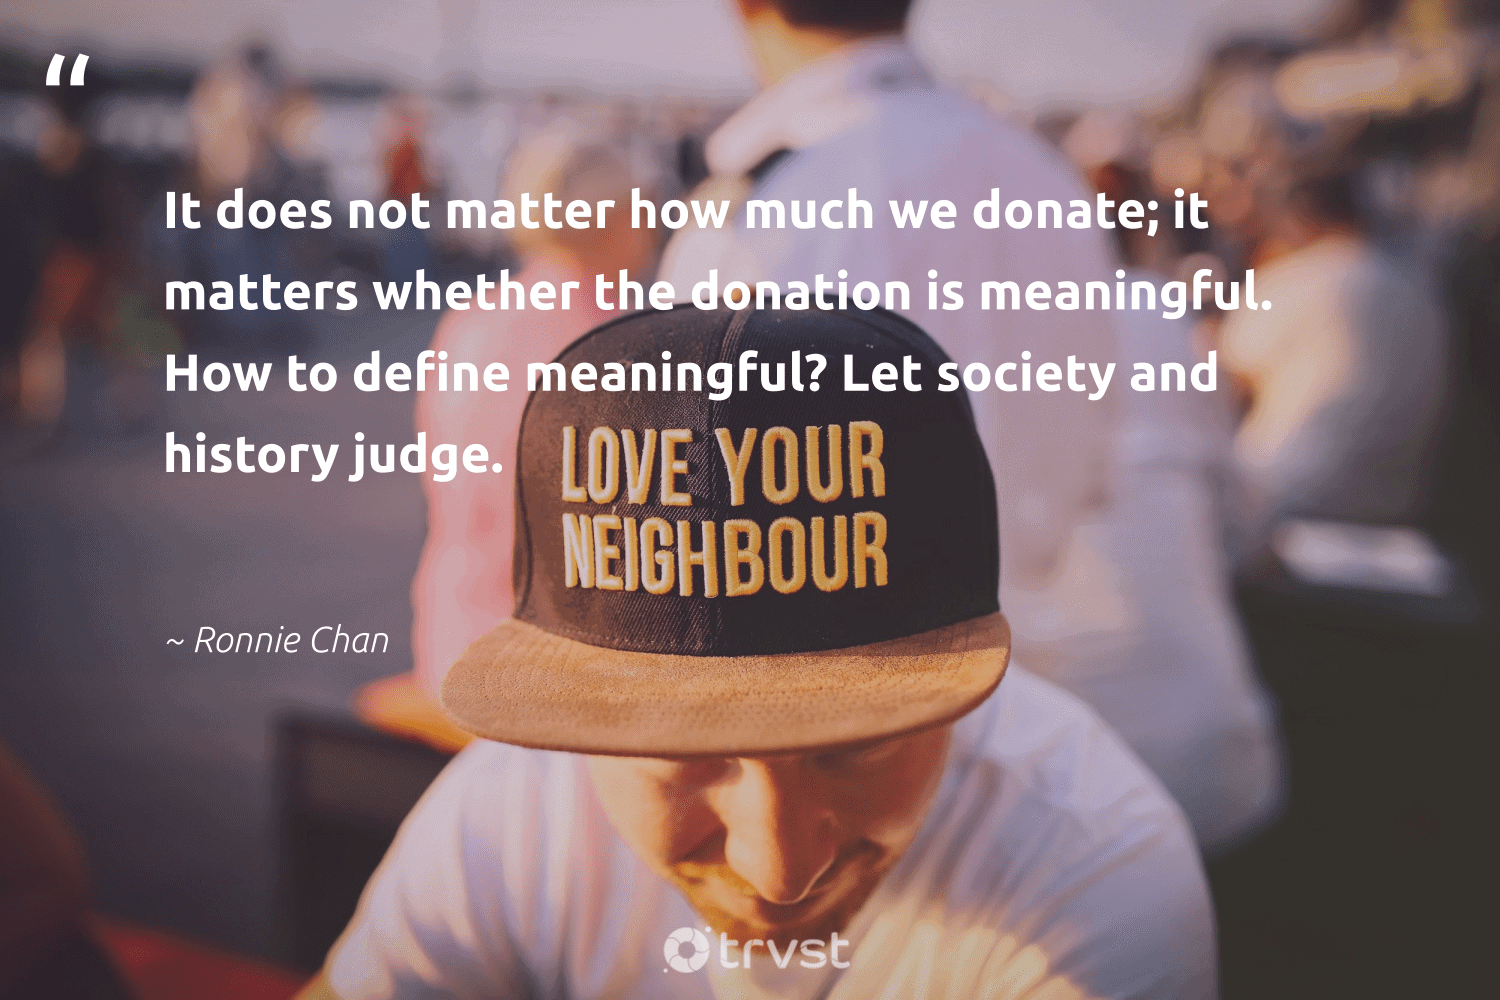 """""""It does not matter how much we donate; it matters whether the donation is meaningful. How to define meaningful? Let society and history judge.""""  - Ronnie Chan #trvst #quotes #society #dogood #dosomething #socialchange #collectiveaction #communities #impact #workingtogether #takeaction #makeadifference"""